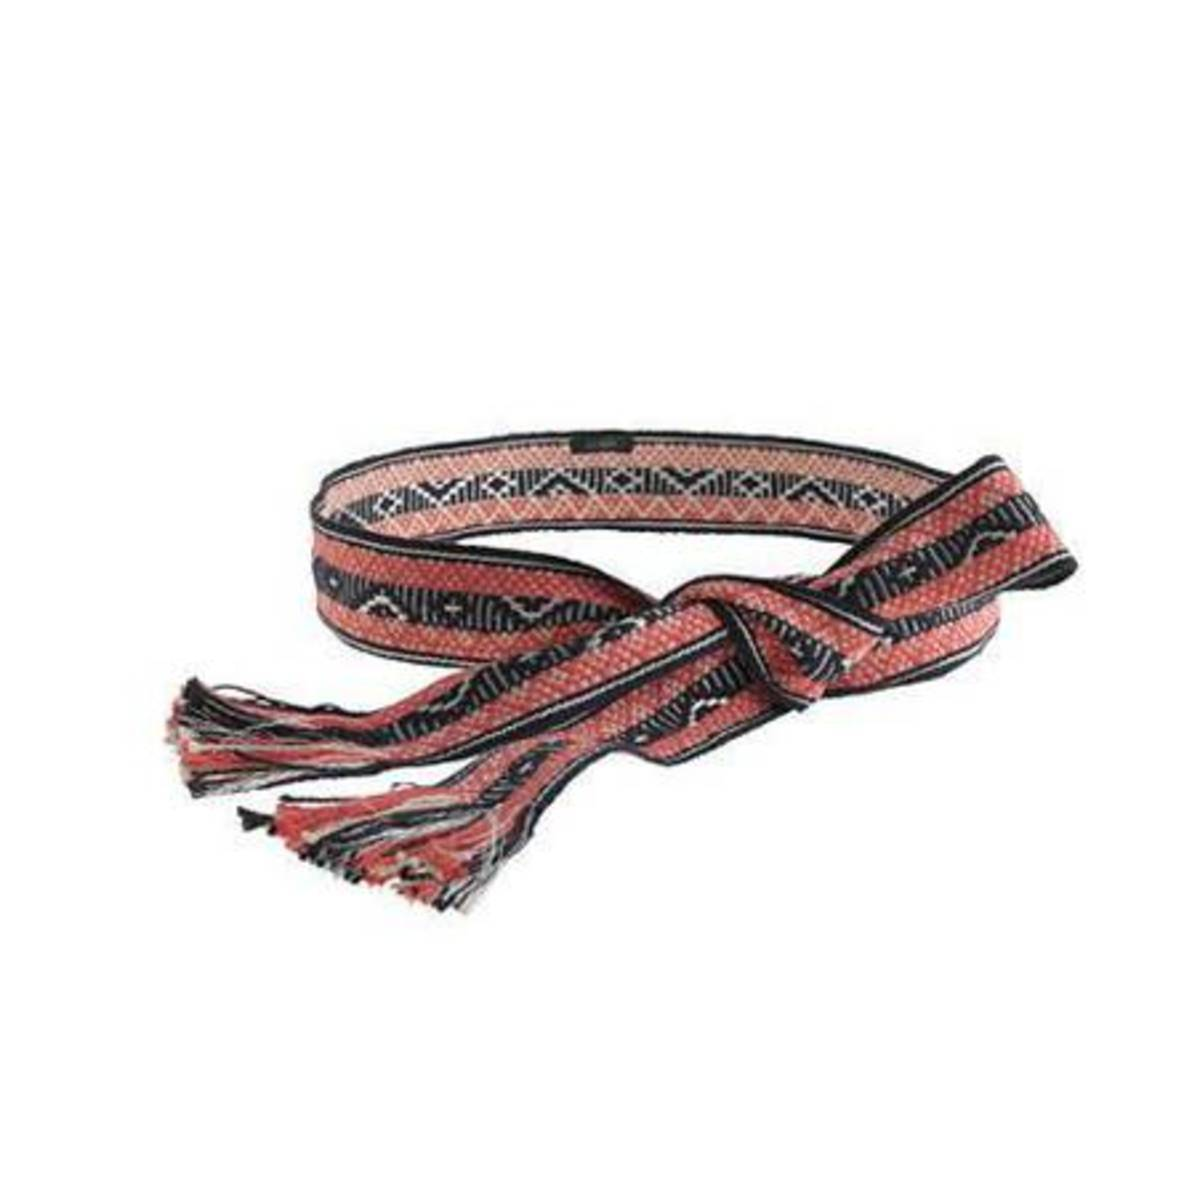 Ceinture-a-nouer-J-Crew_reference2